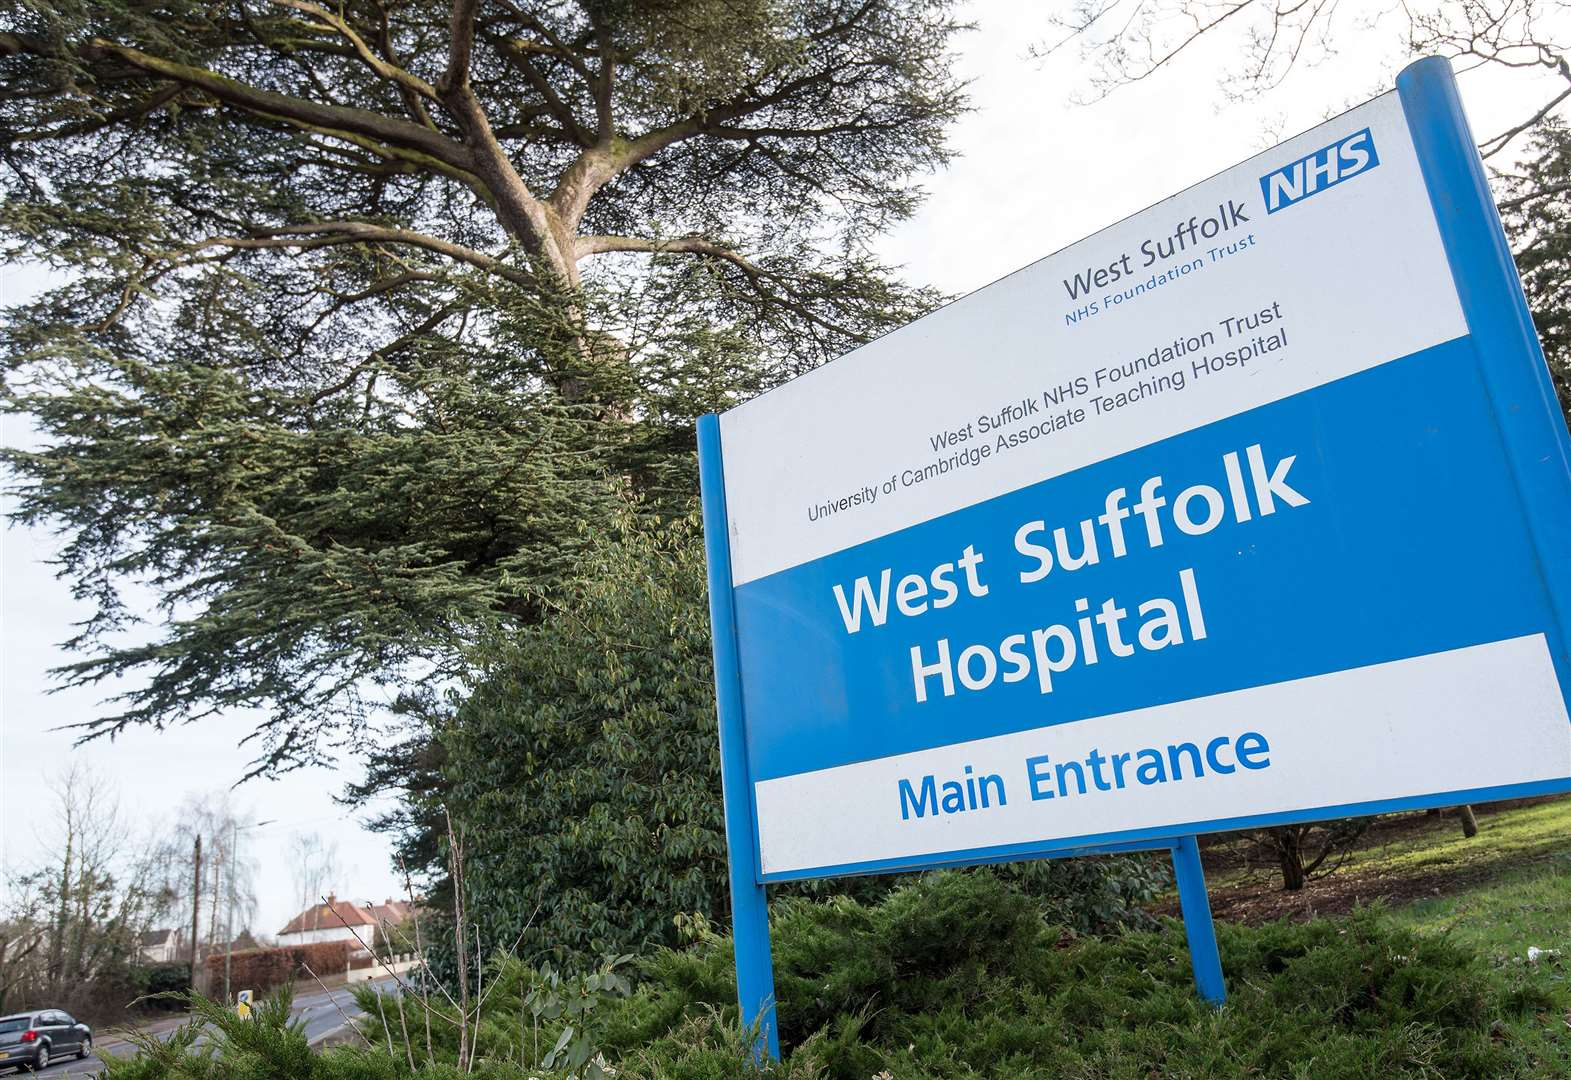 NHS Staff Survey puts West Suffolk Hospital among best